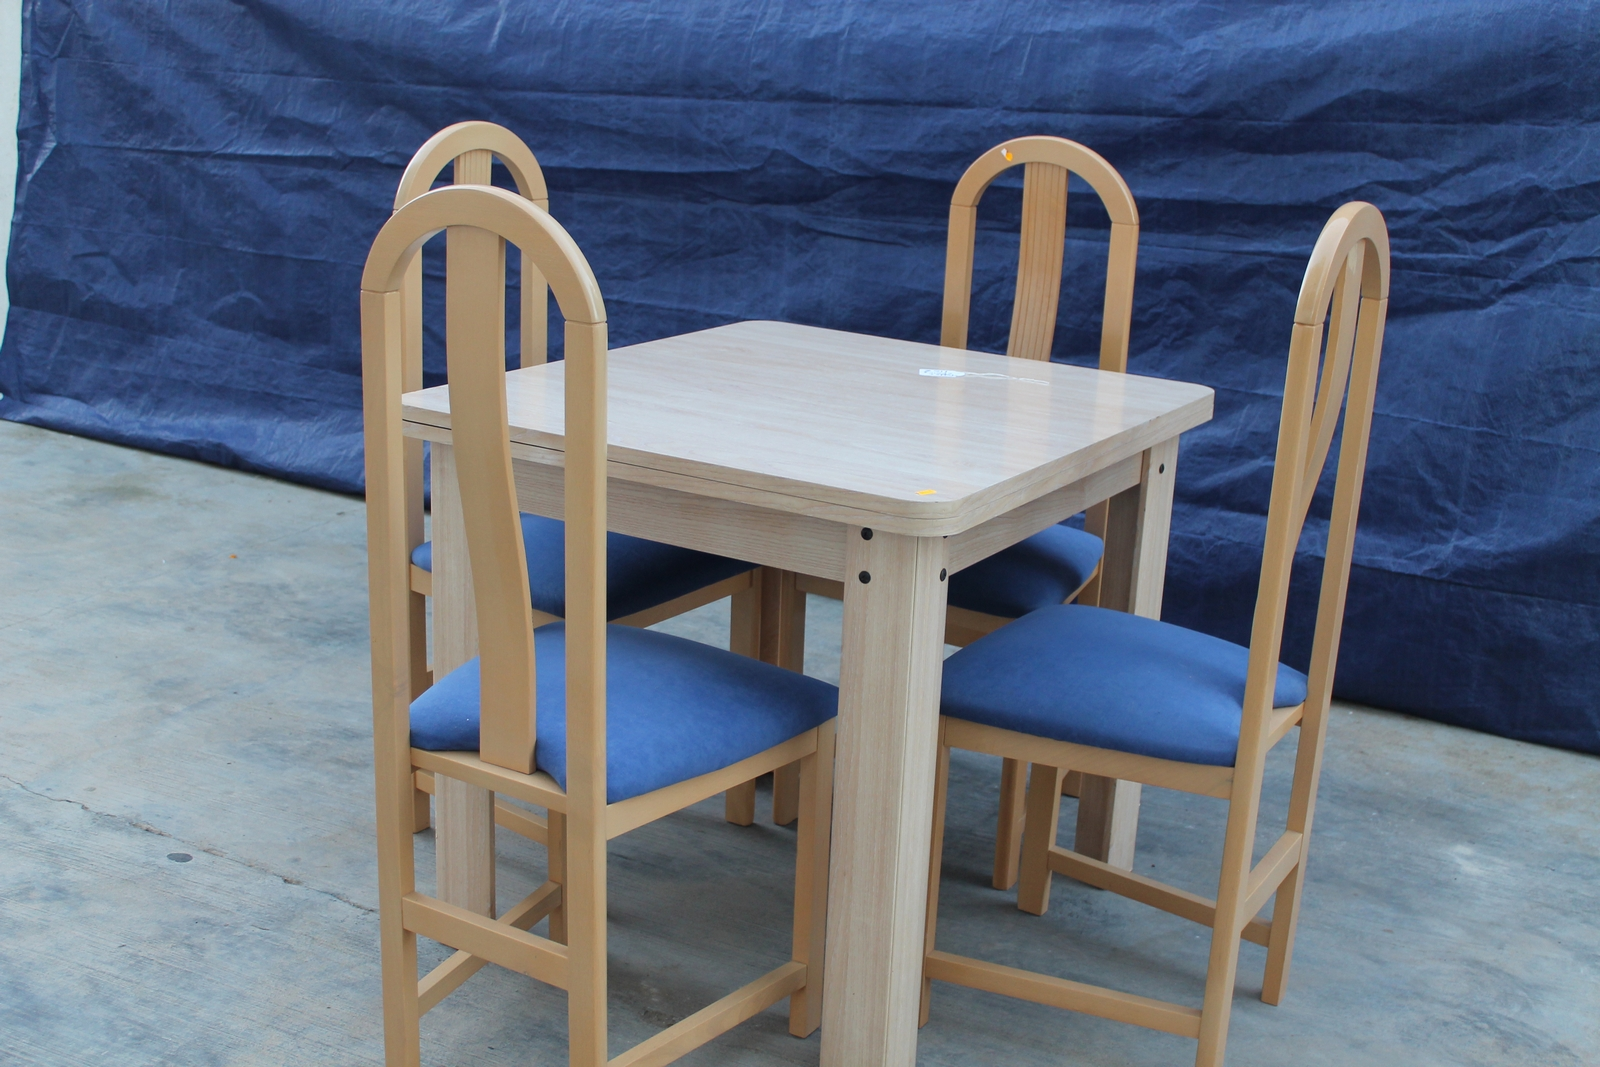 Second hand dining tables chairs buy sell used html autos weblog - Second hand dining tables ...